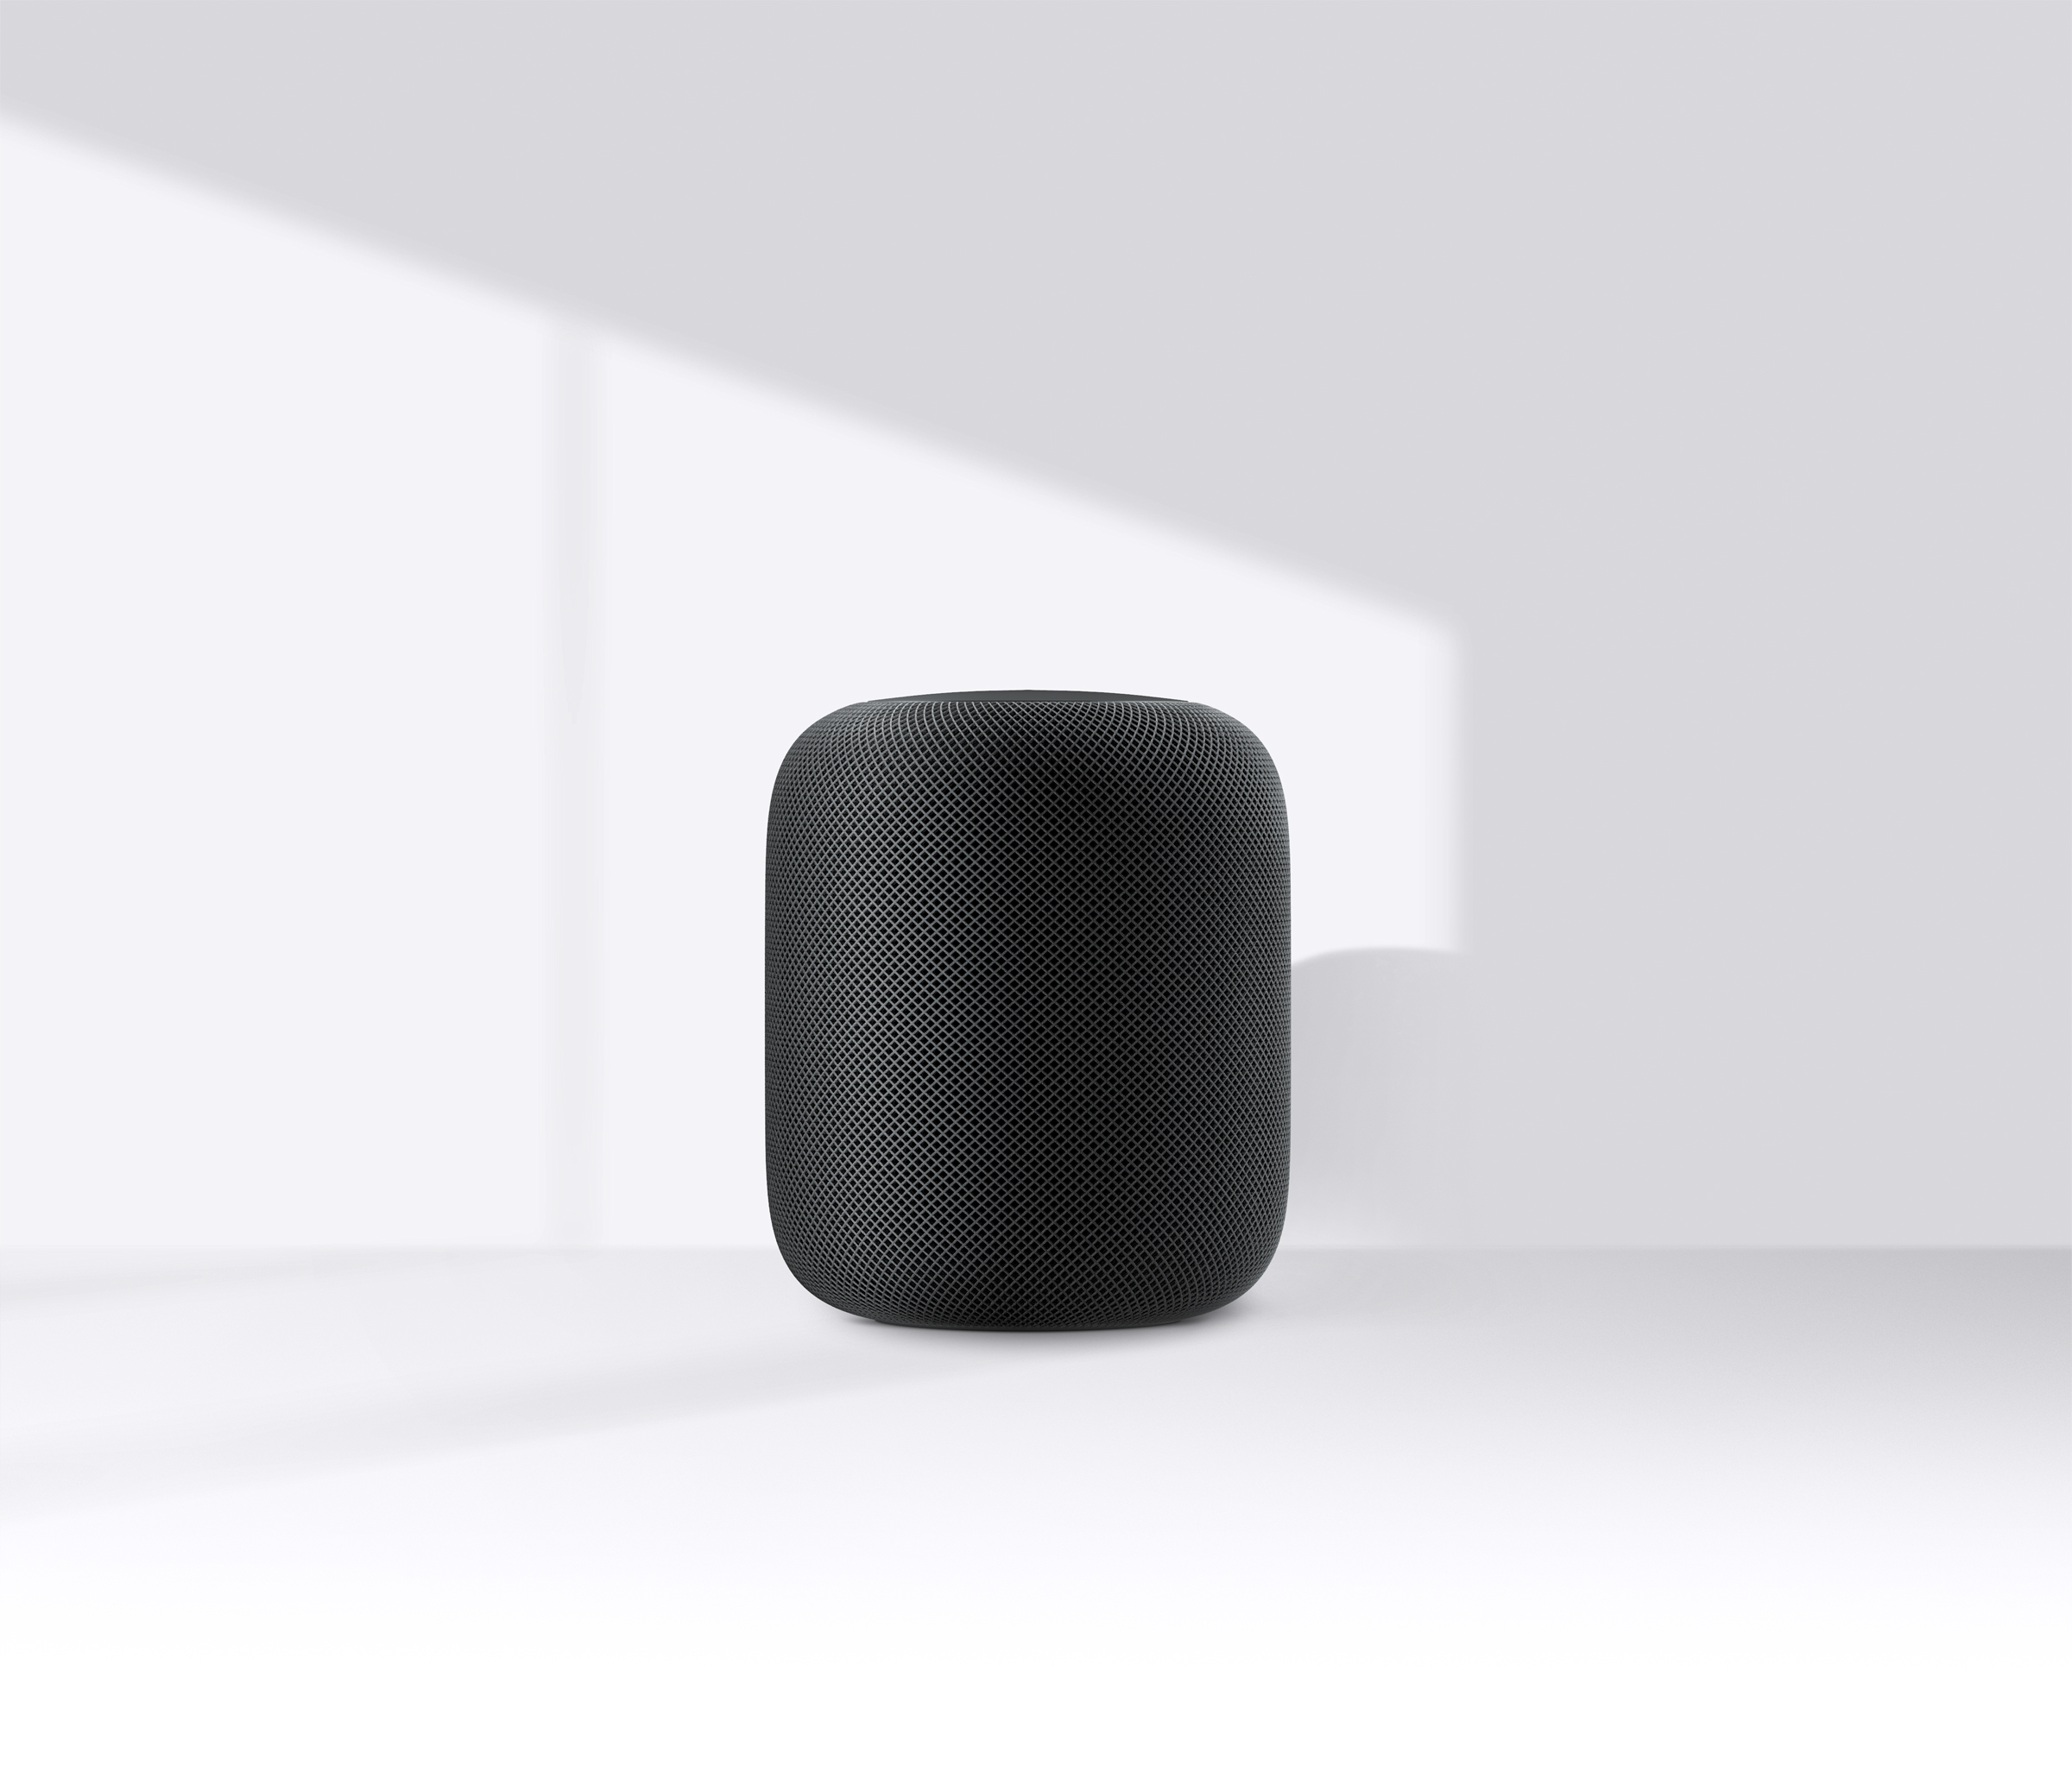 Until the HomePod mini ships, Intercom is limited to the original HomePod.